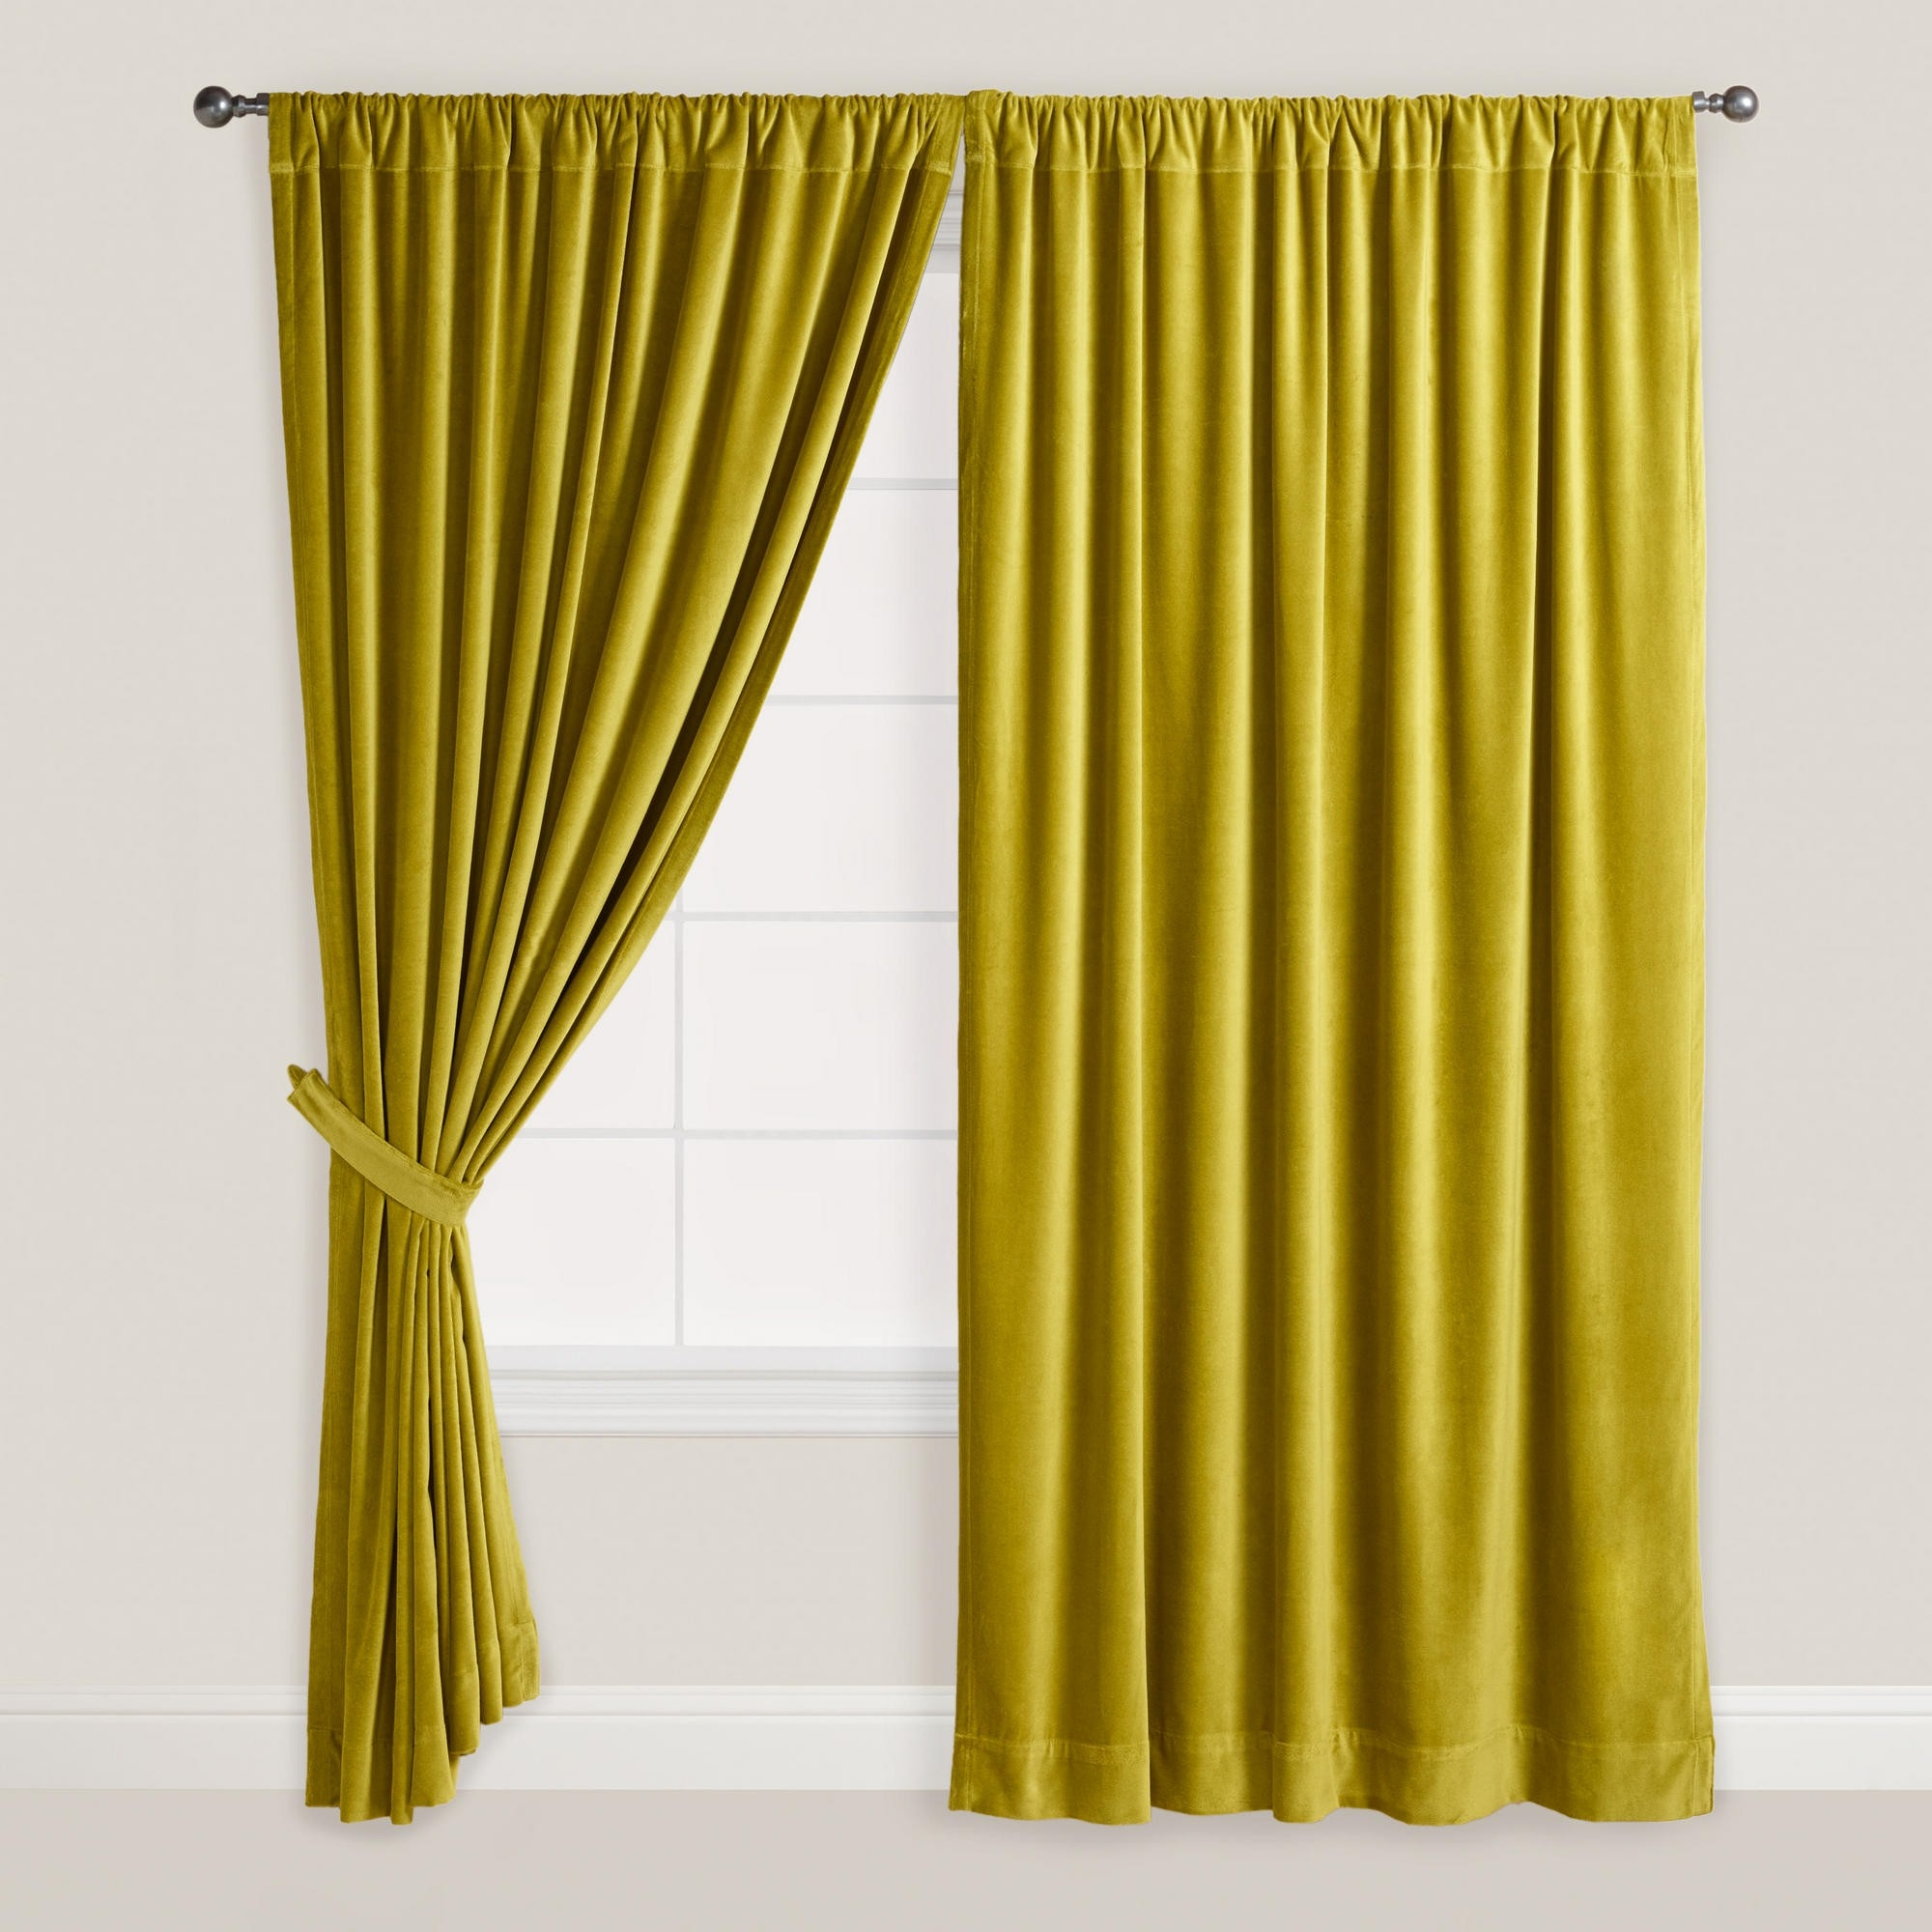 Stunning Velvet Door Curtain Ebay Door Panel Gold Velvet Curtain Inside Velvet Door Curtain (Image 10 of 15)